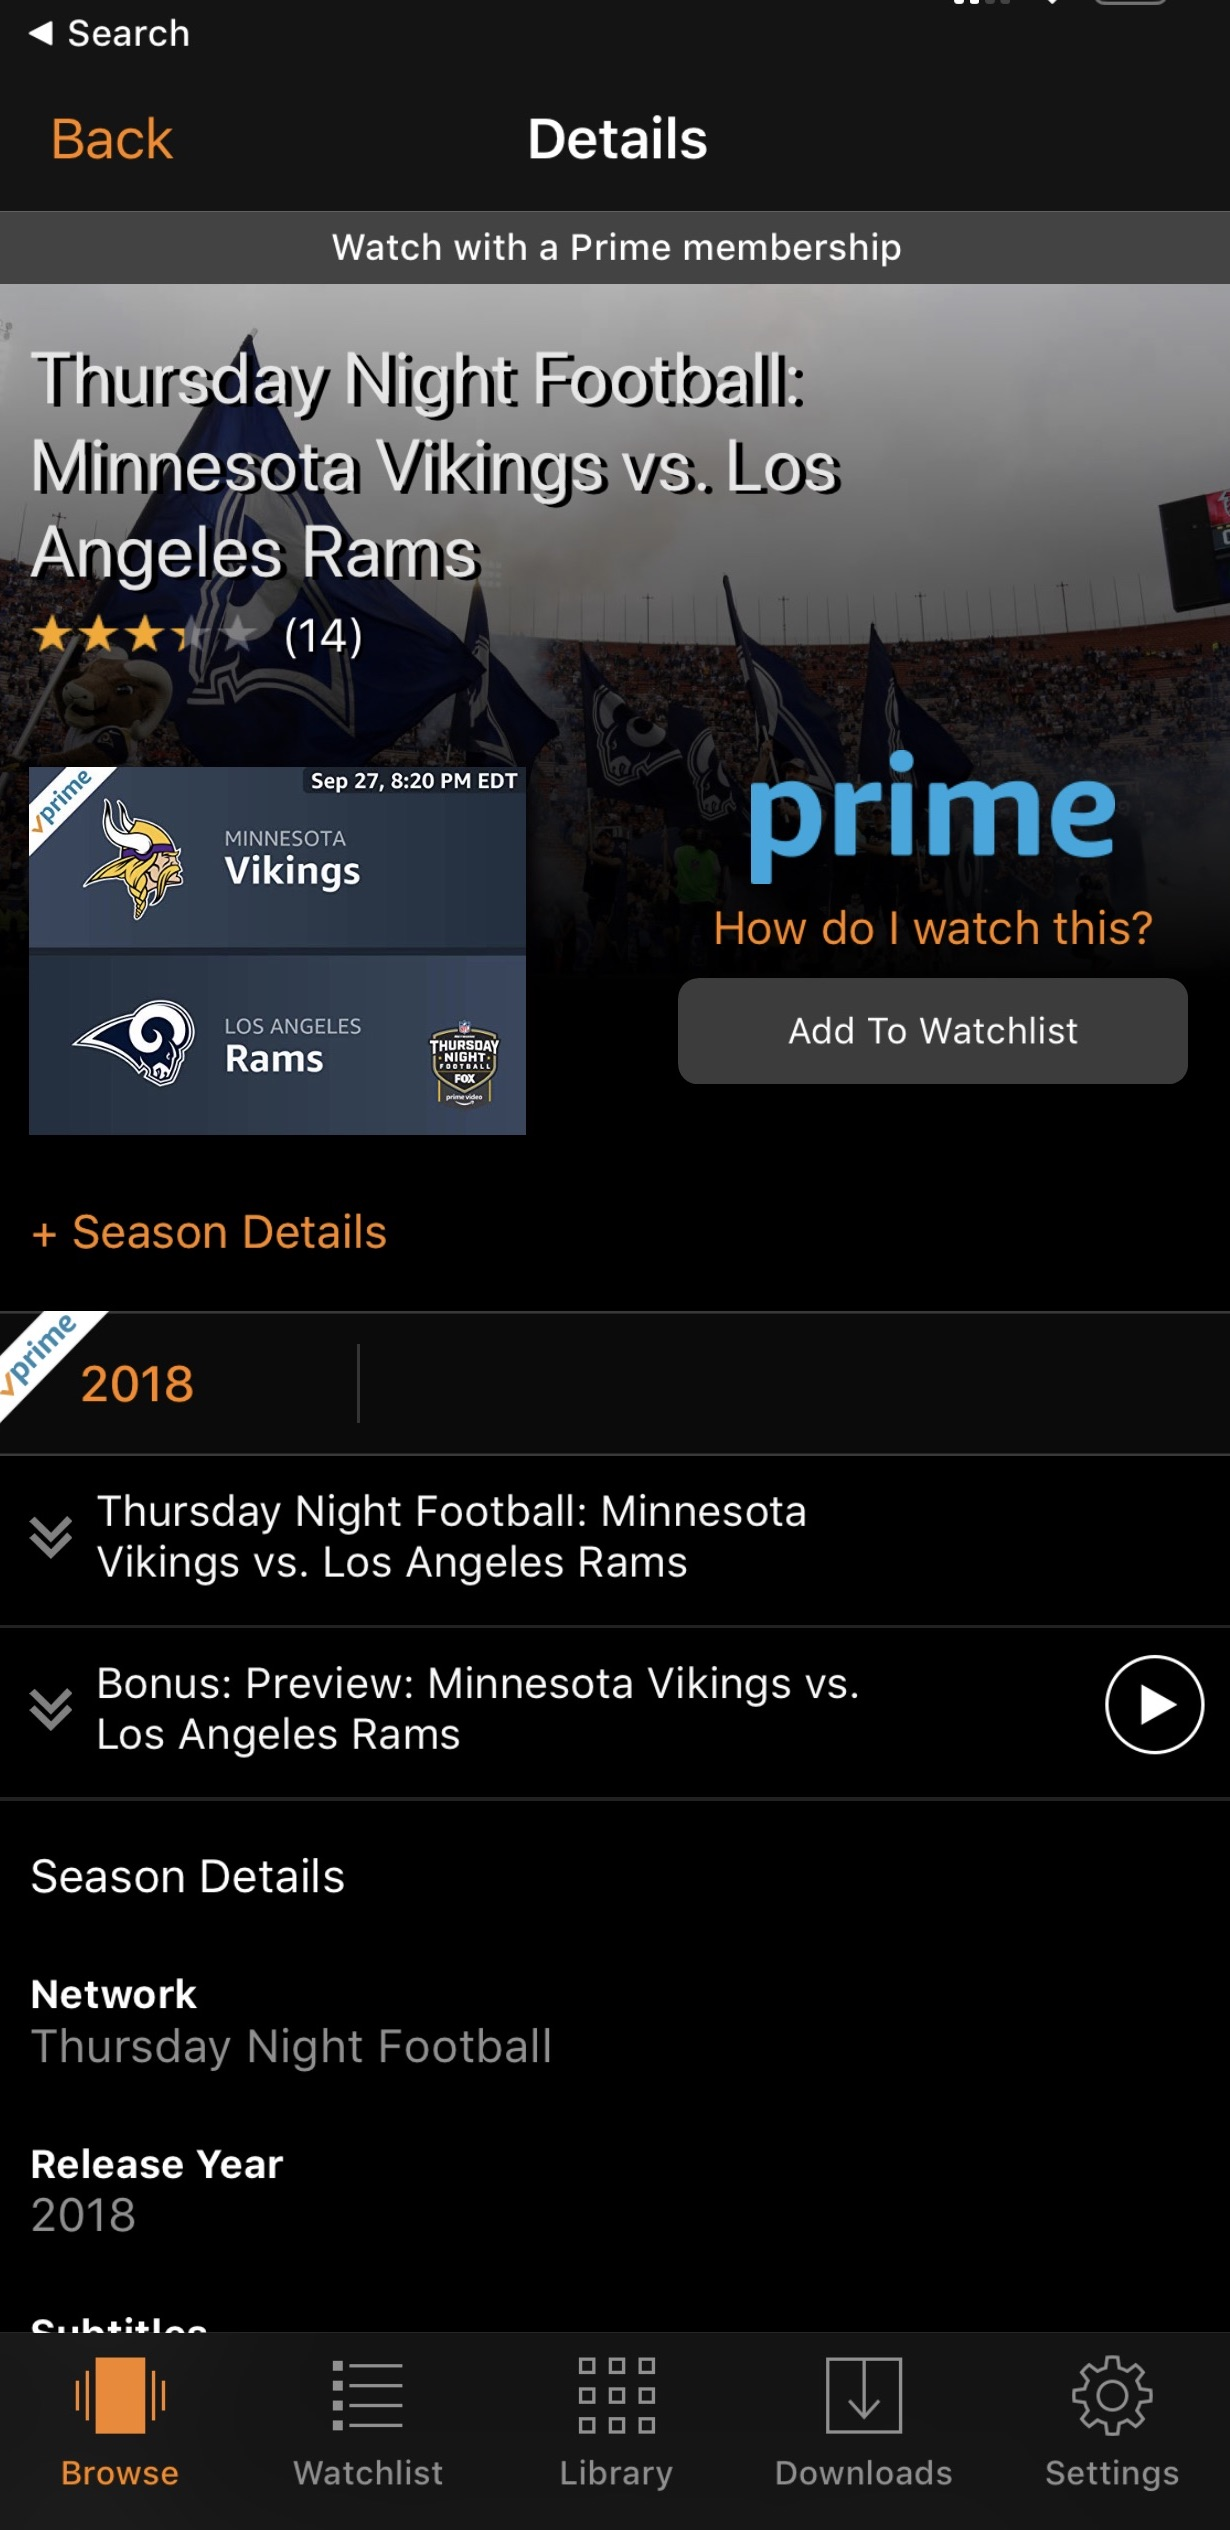 Amazon reveals plans for live streaming Thursday Night NFL